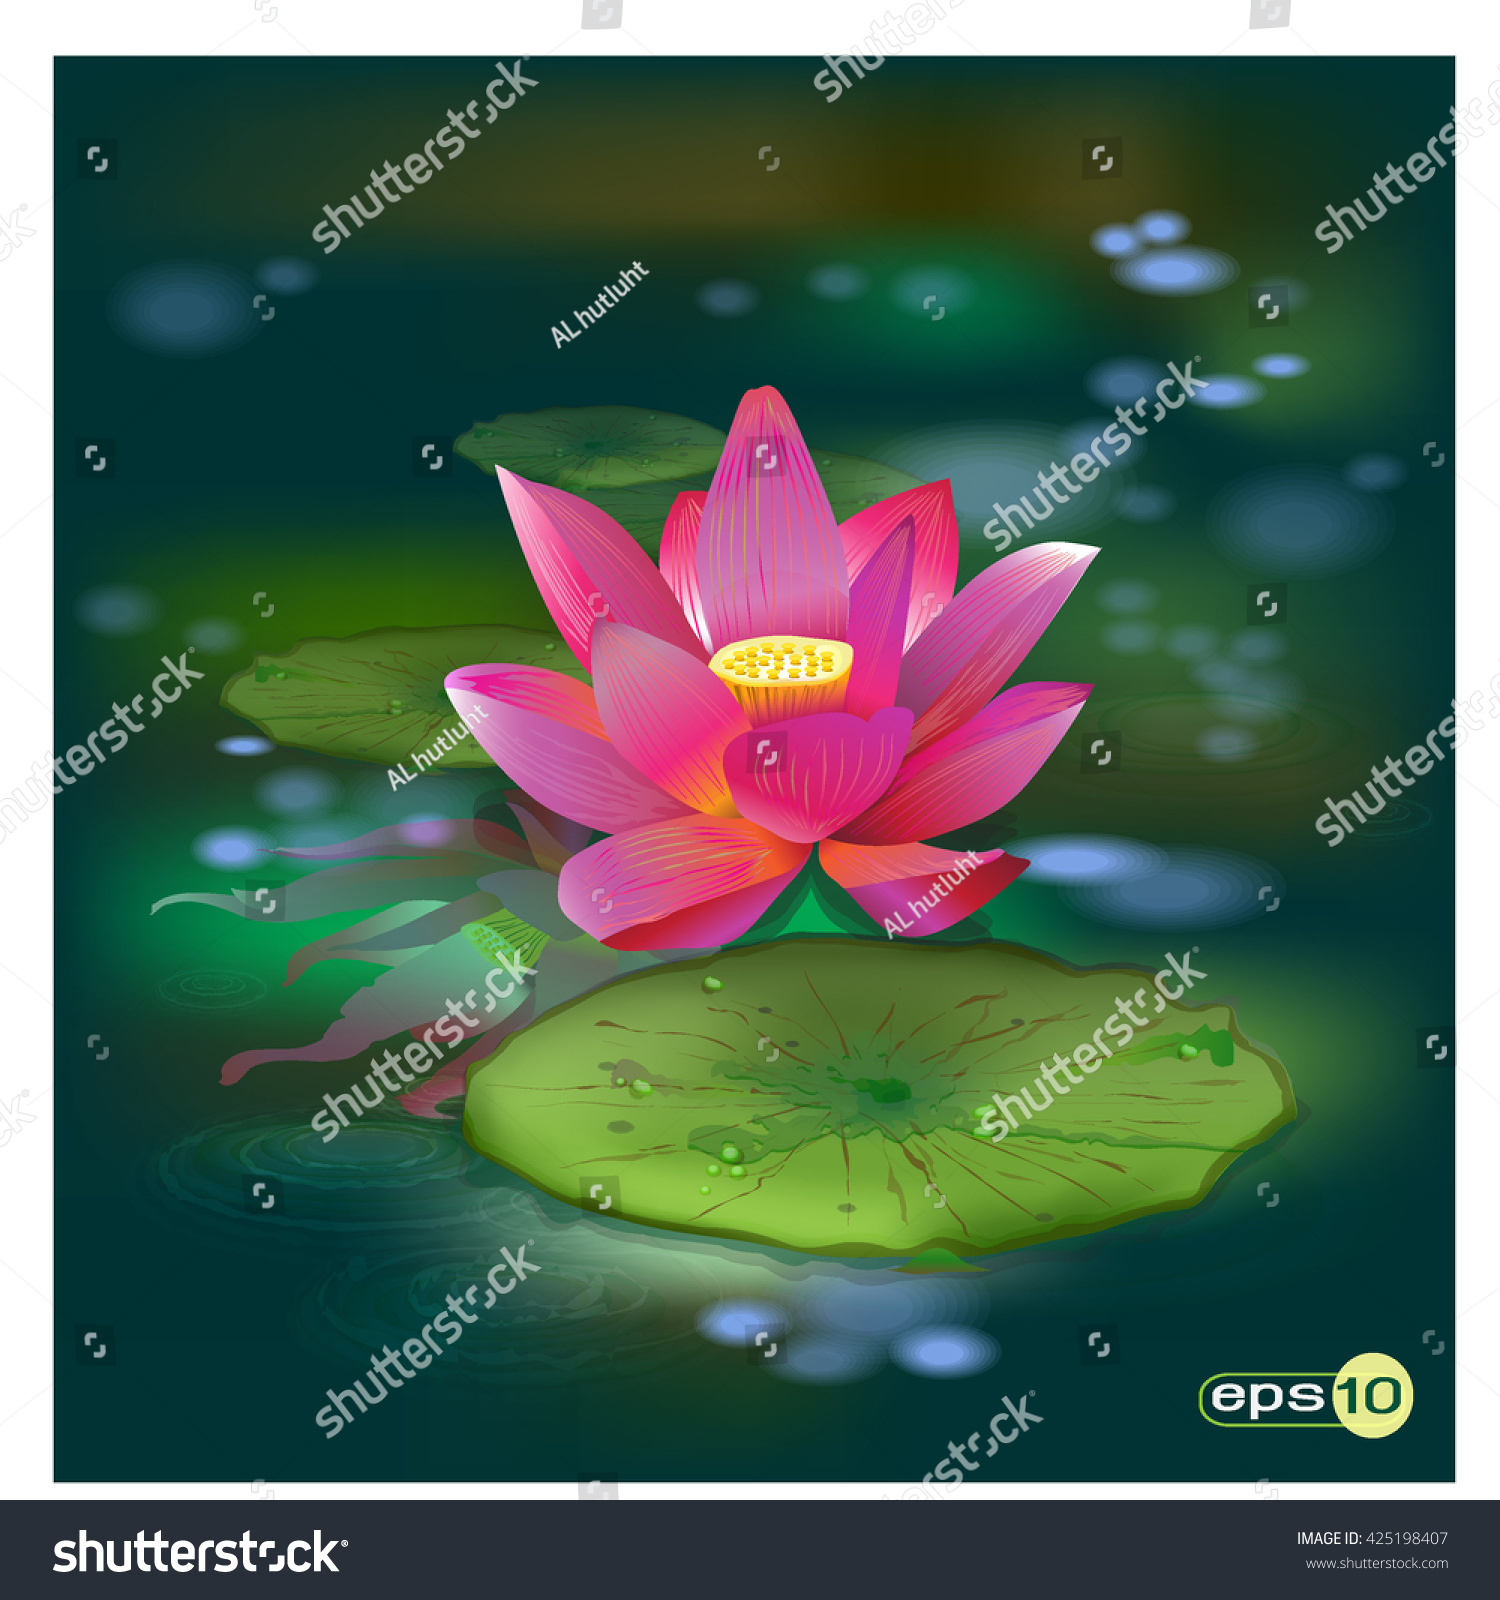 This Beautiful Waterlily Lotus Flower Complimented Stock Vector